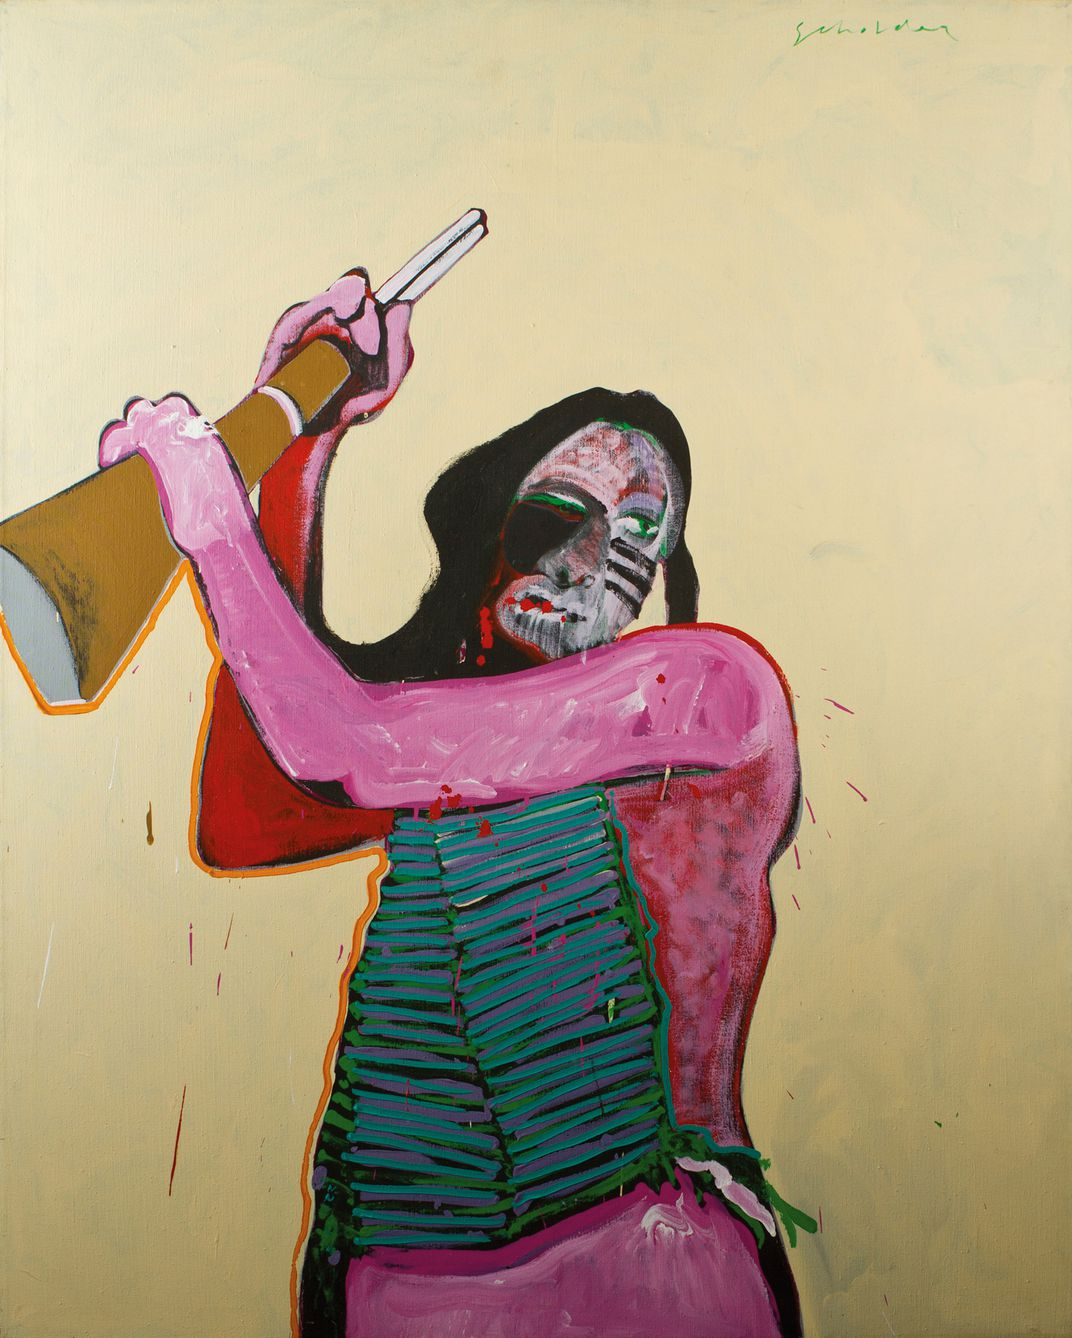 FRITZ SCHOLDER, HOLLYWOOD INDIAN, 1973, ACRYLIC ON CANVAS, 1727 x 1371 mm, PRIVATE COLLECTION